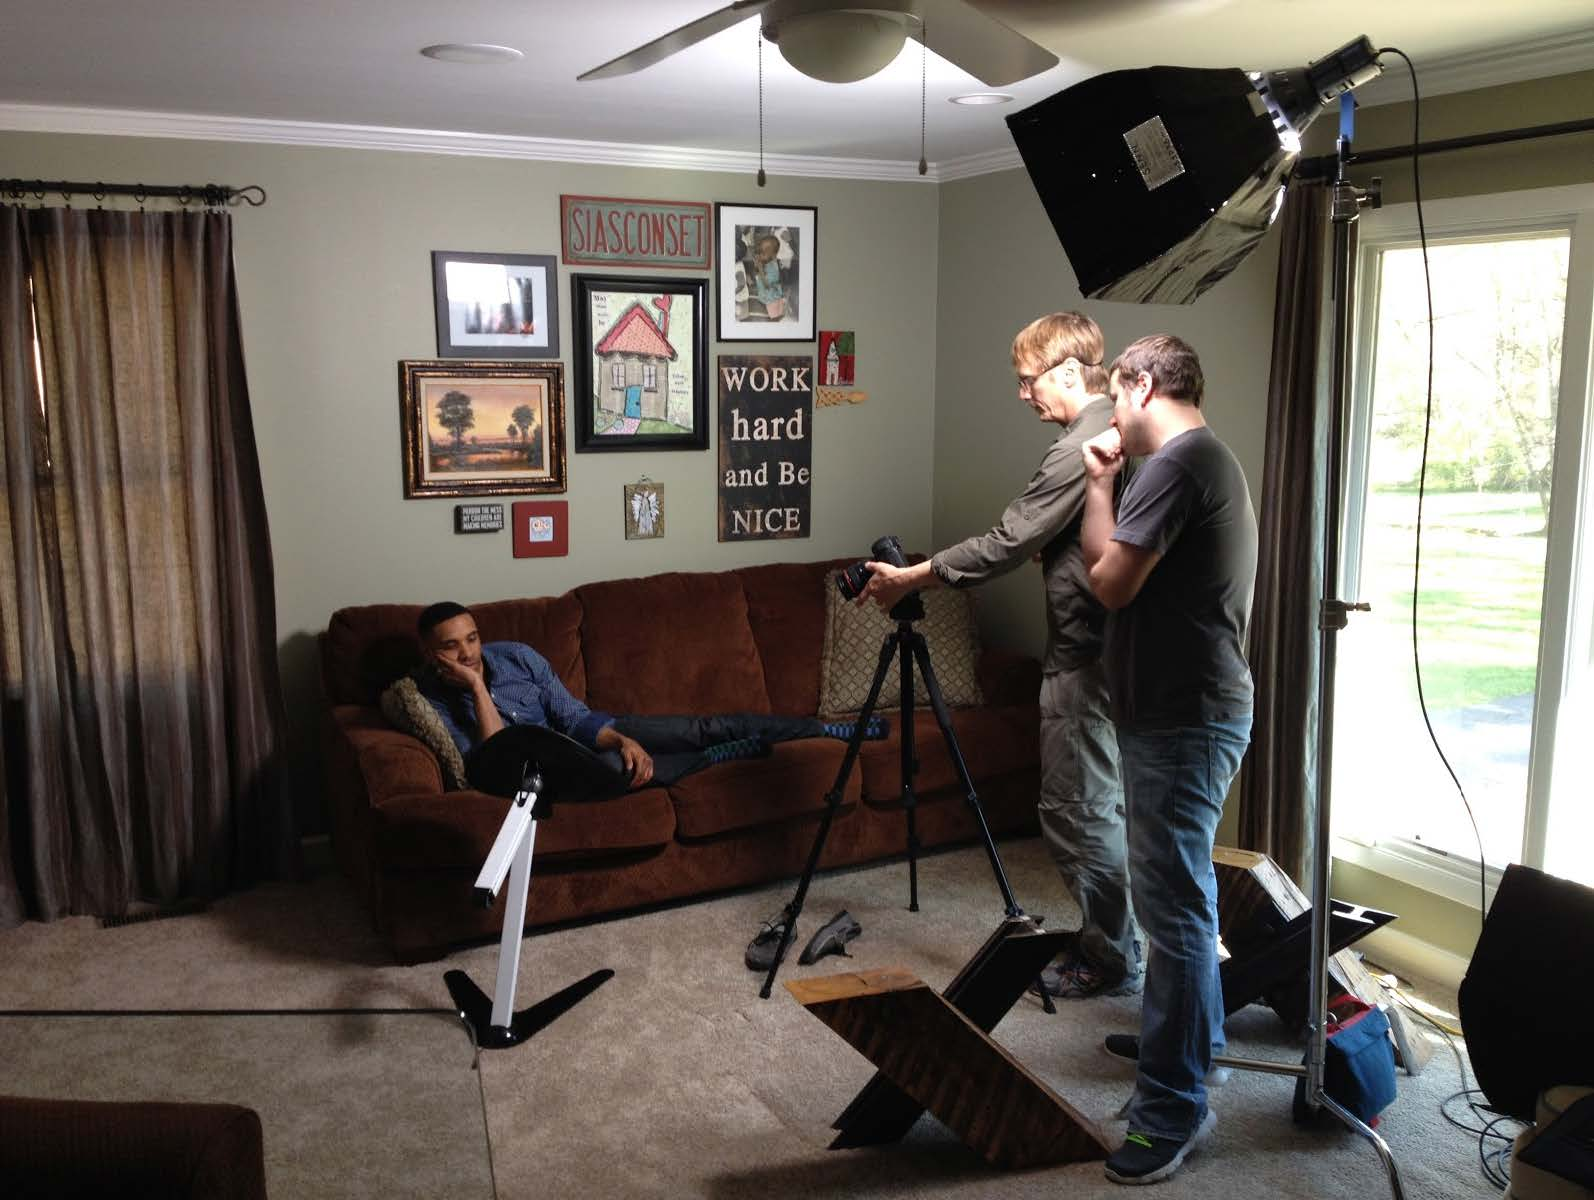 Camera man in home filming a person talking about their Kickstarter campaign